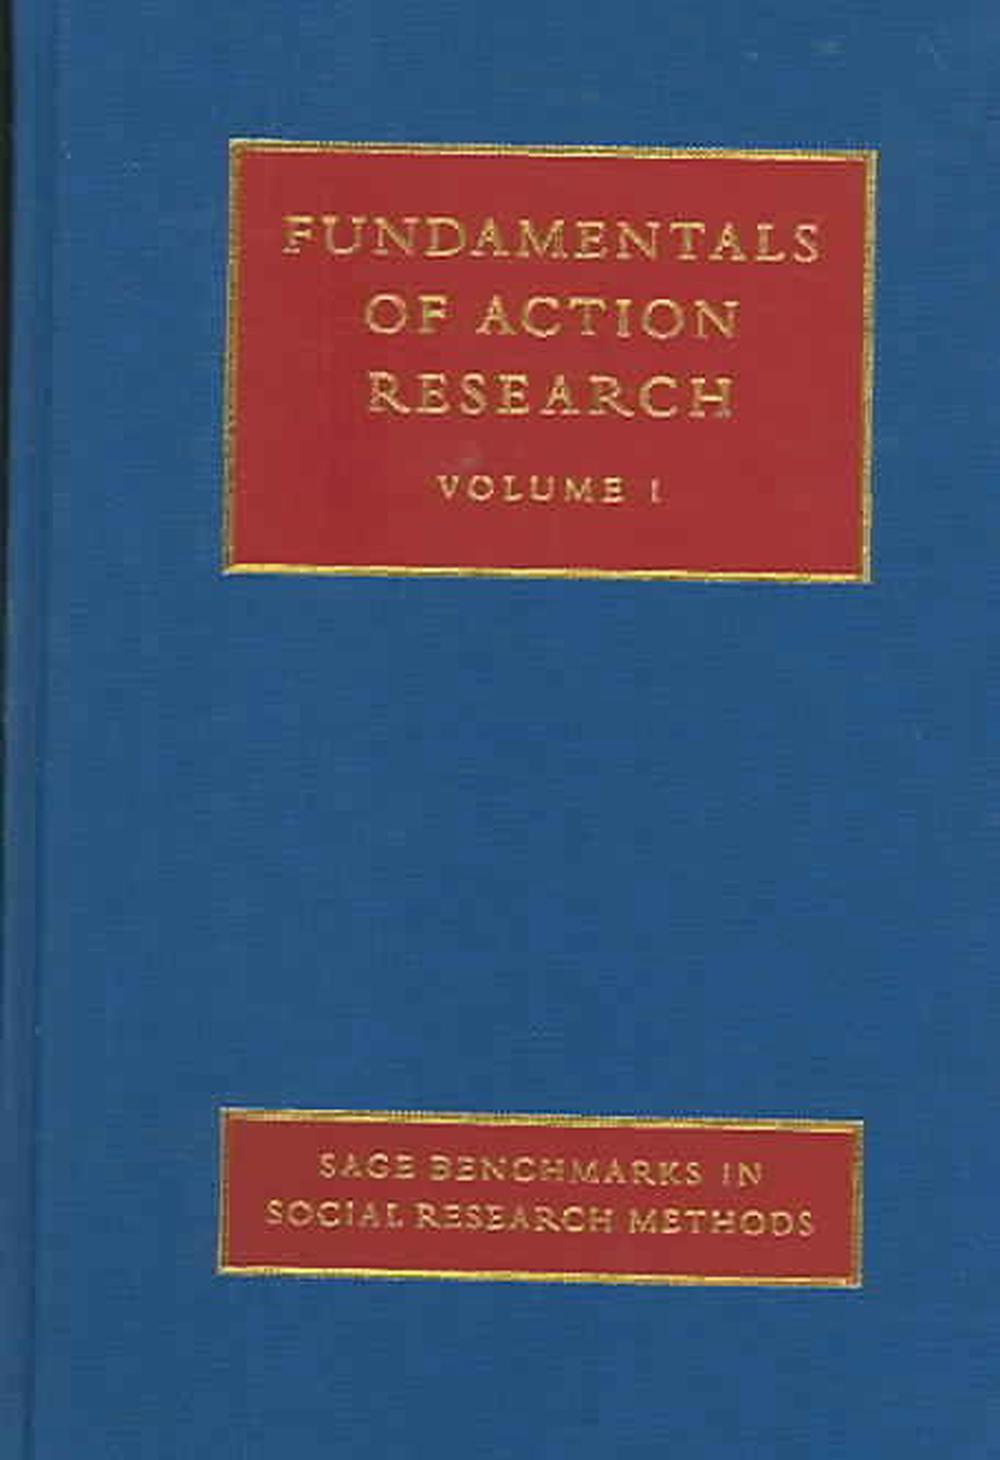 Fundamentals of Action Research